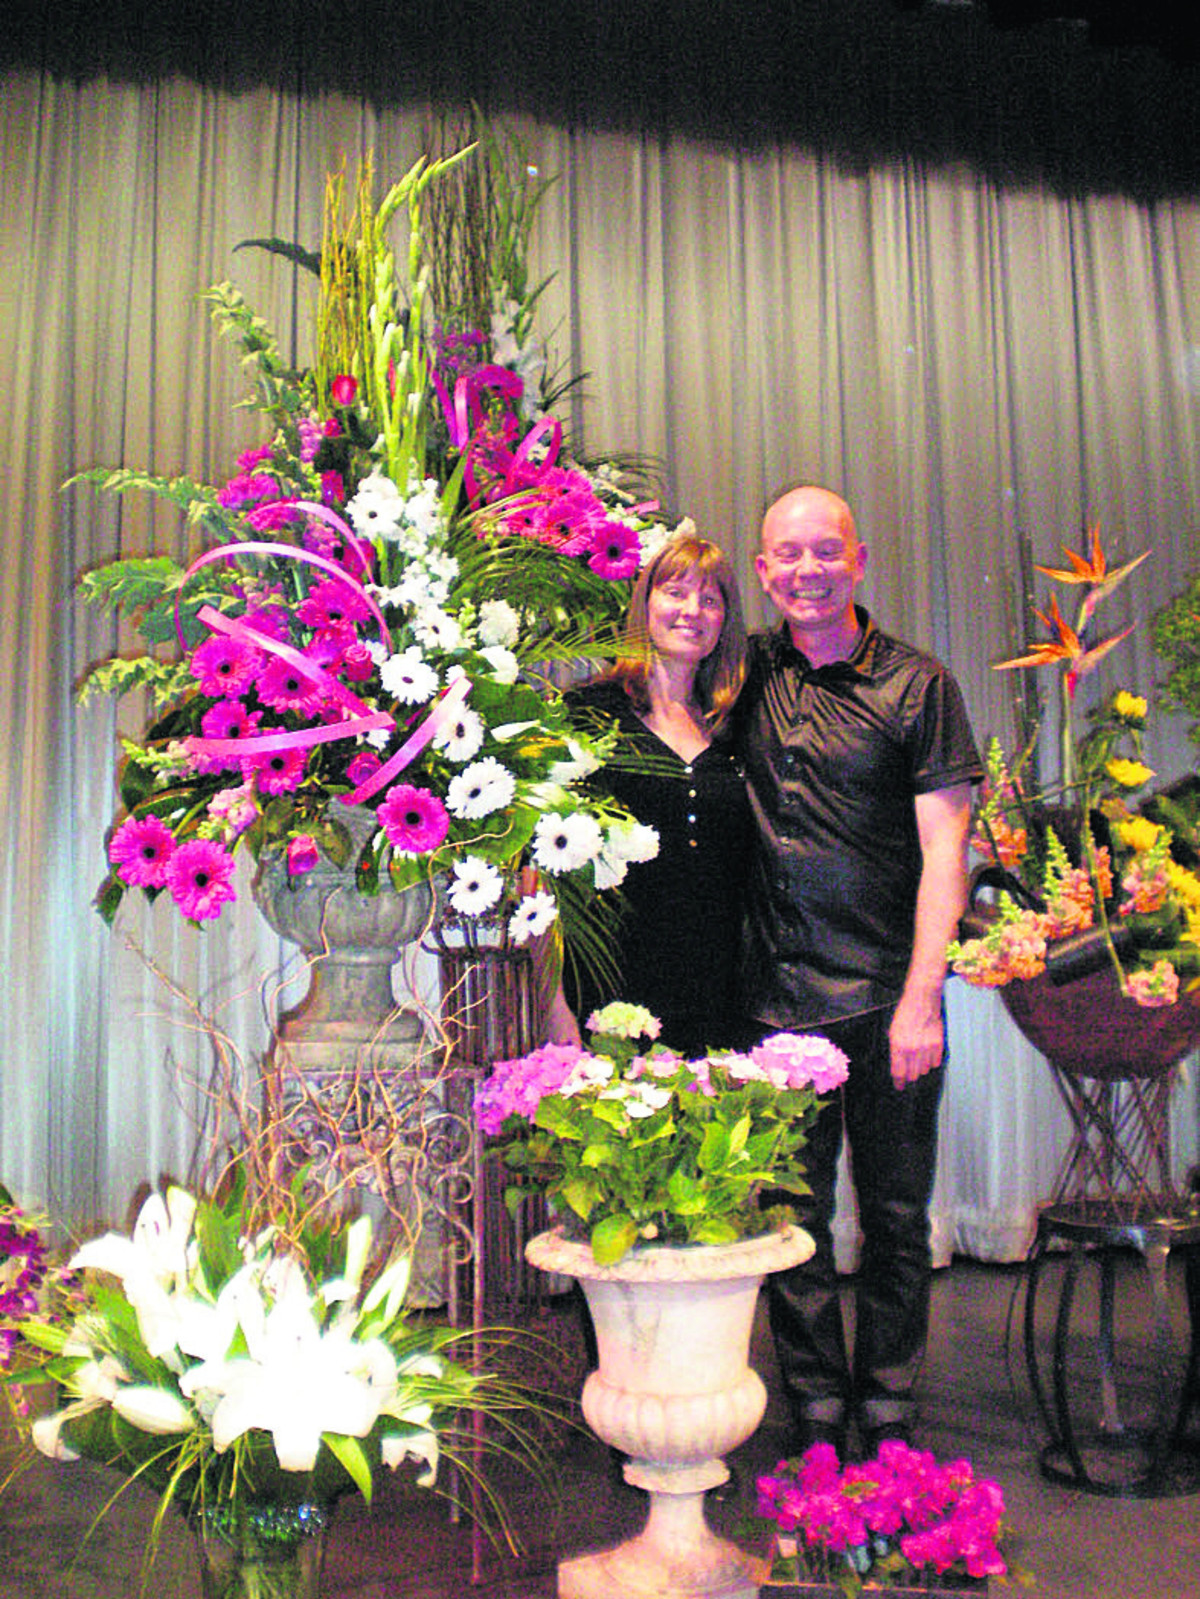 Demonstrator and TV personality Jonathan Mosley with some of the marvellous arrangements he created for Melksham & District Flower Arrangement Society recently, and club vice-chairman Caroline Smyth, who assisted him on stage.